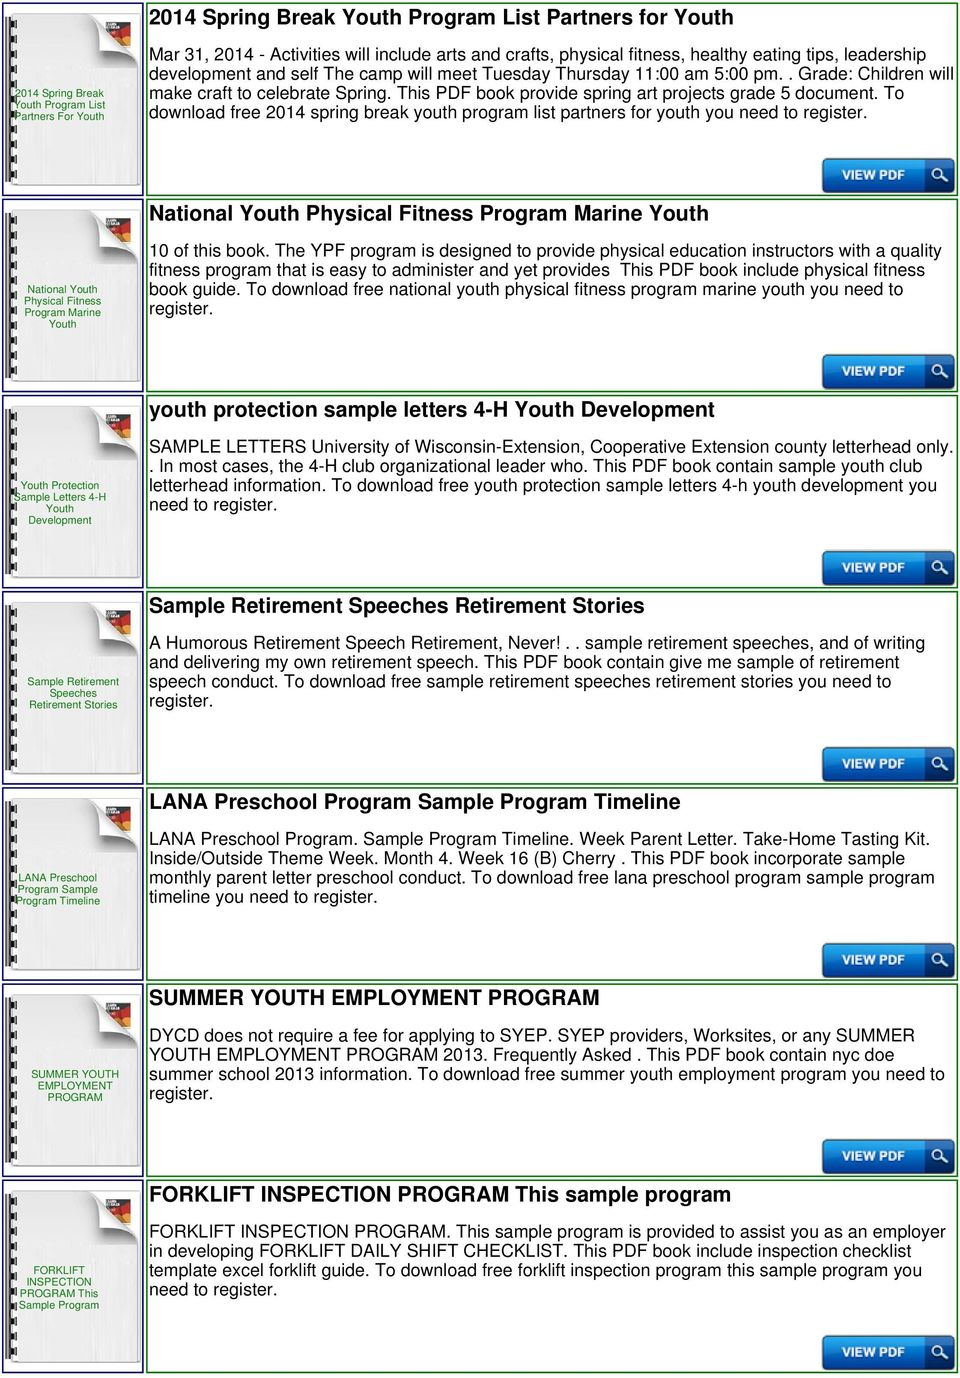 To download free 2014 spring break youth program list partners for youth  you need to National